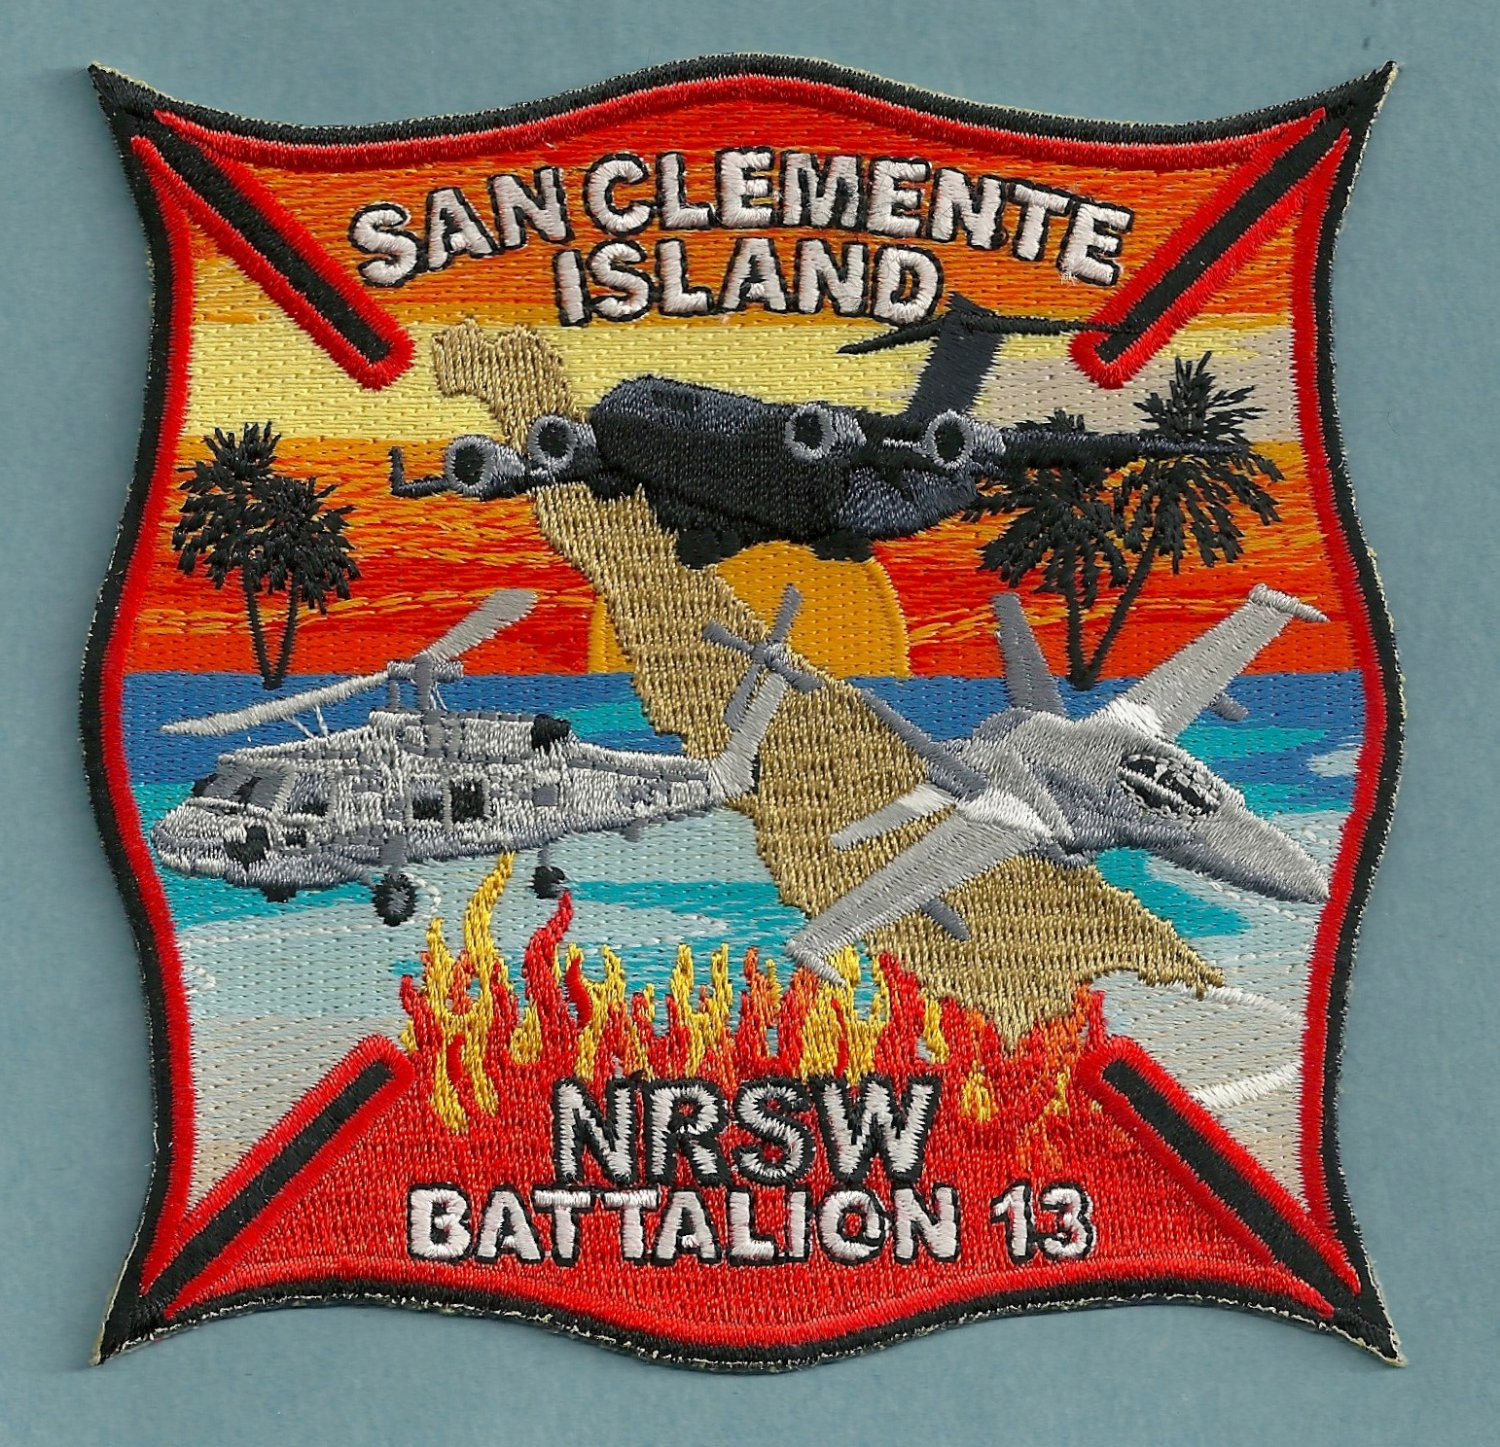 SAN CLEMENTE ISLAND NAVAL AIR FACILITY CALIFORNIA FIRE PATCH